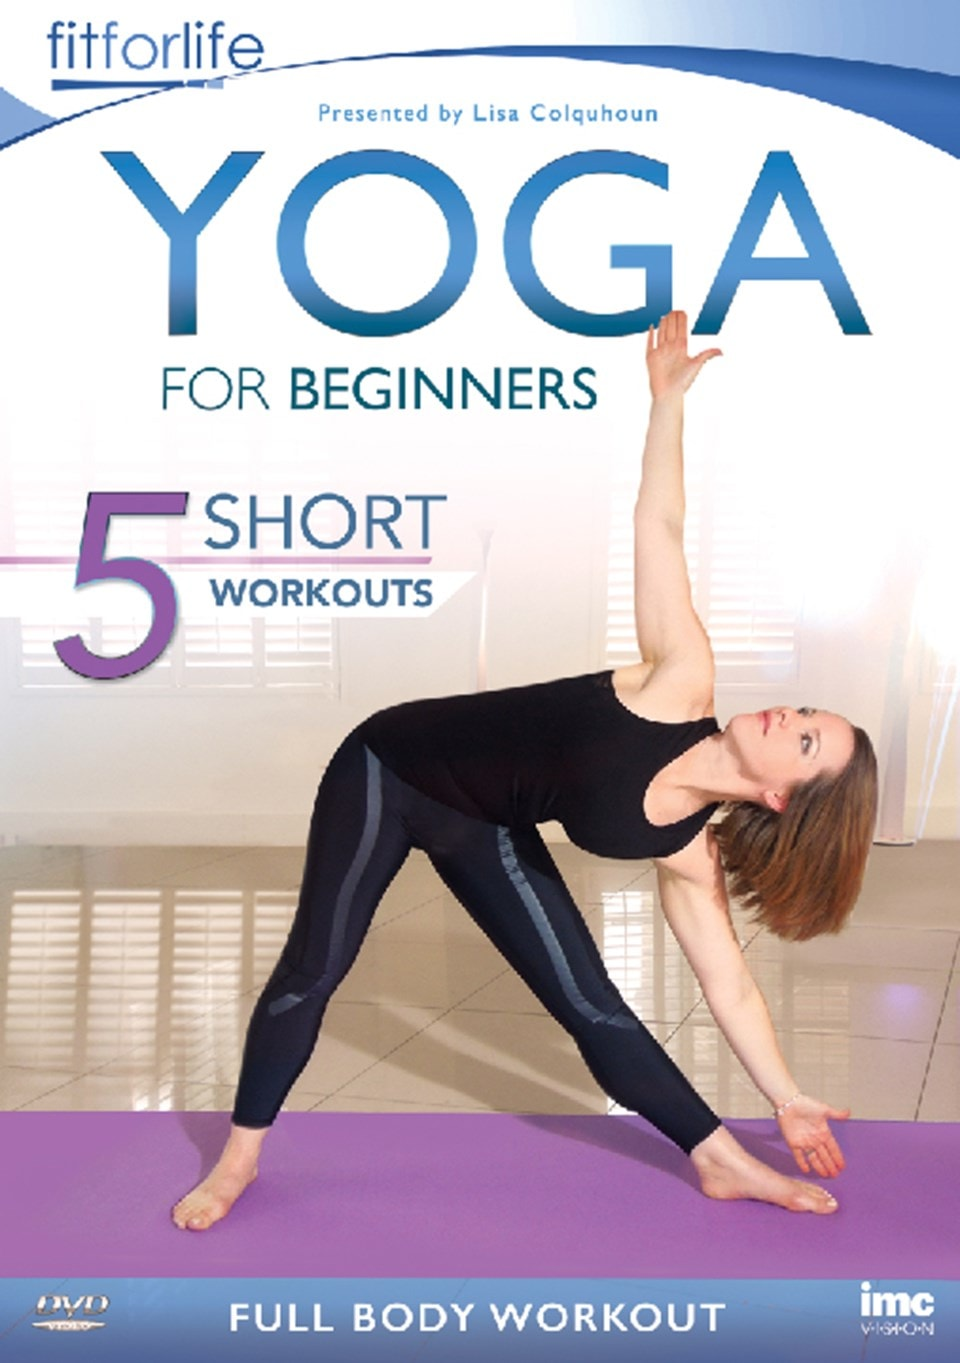 Yoga for Beginners - 1